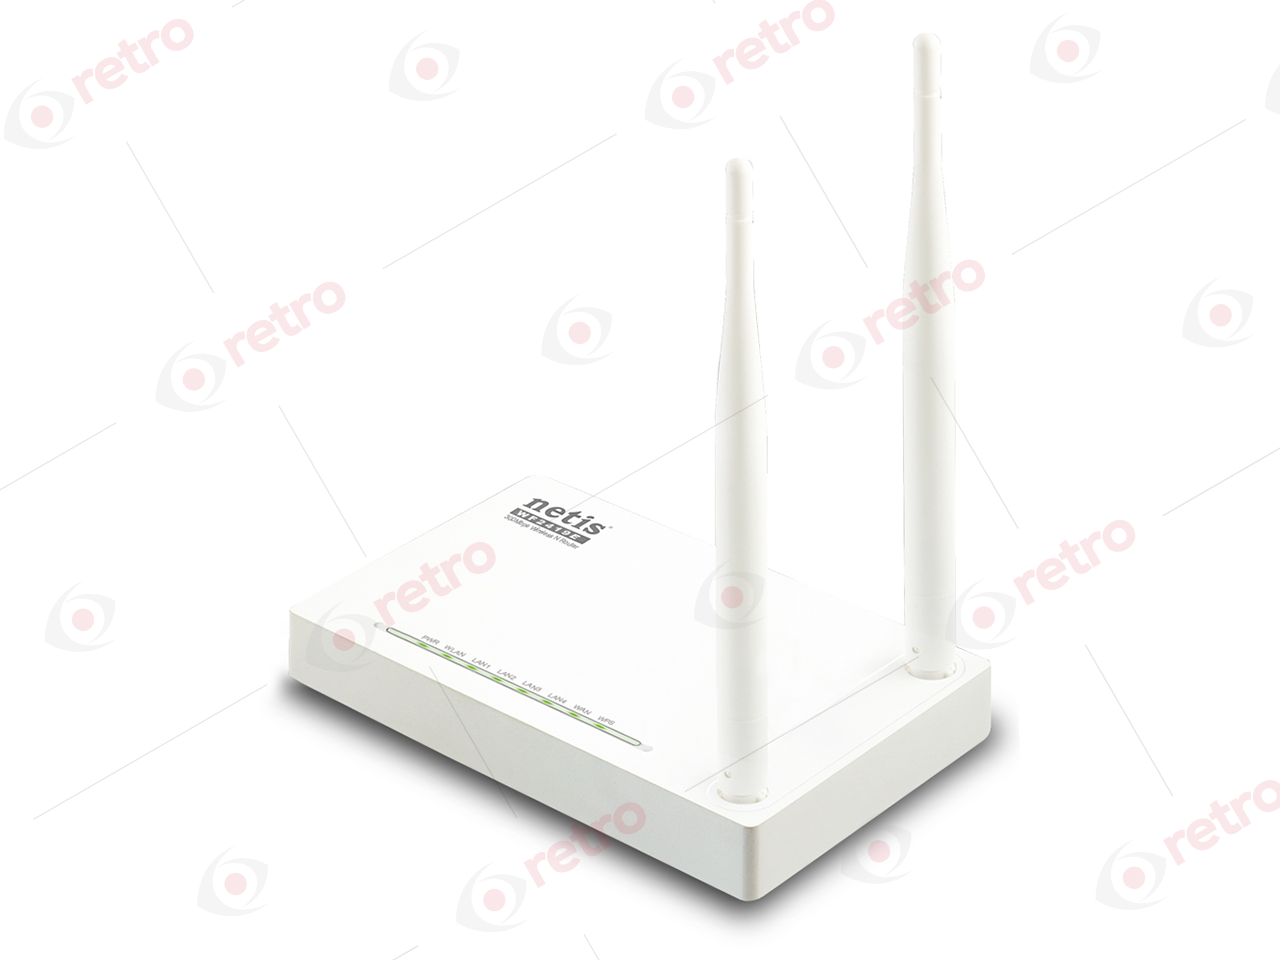 NETİS WF2419E 300MBPS WİRELESS N ROUTER, 2*5dBi EXTERNAL FİXED ANTENNAS, IPTV FUNCTİON AND FULL DUAL ACCESS SUPPORT